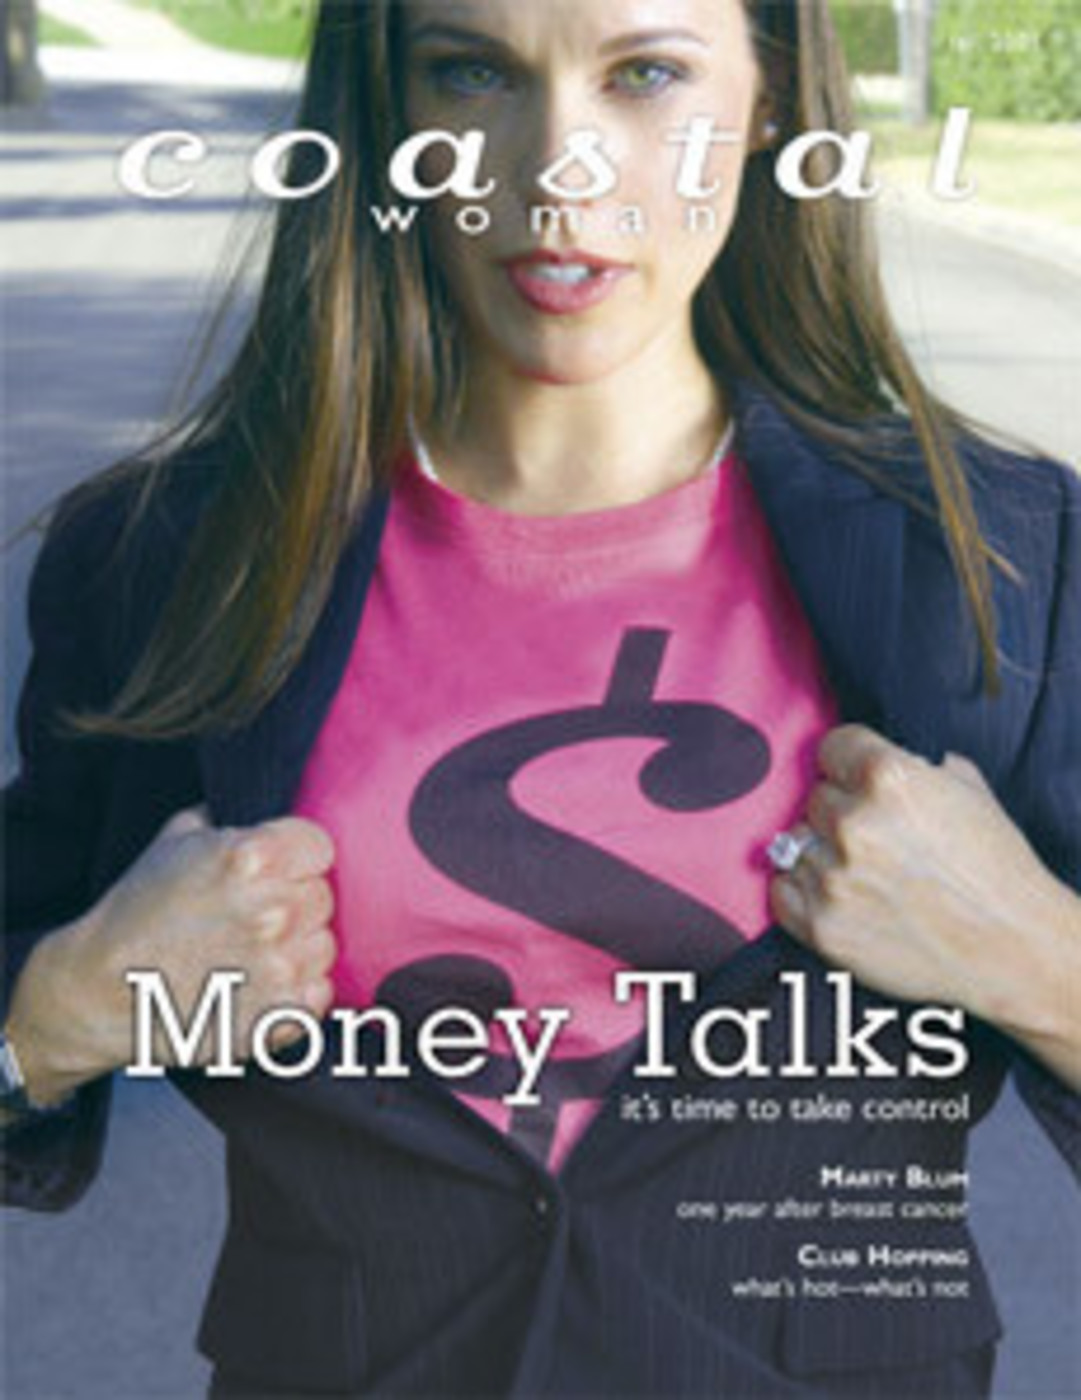 Meredith Hendricks On Money Talk Podcast